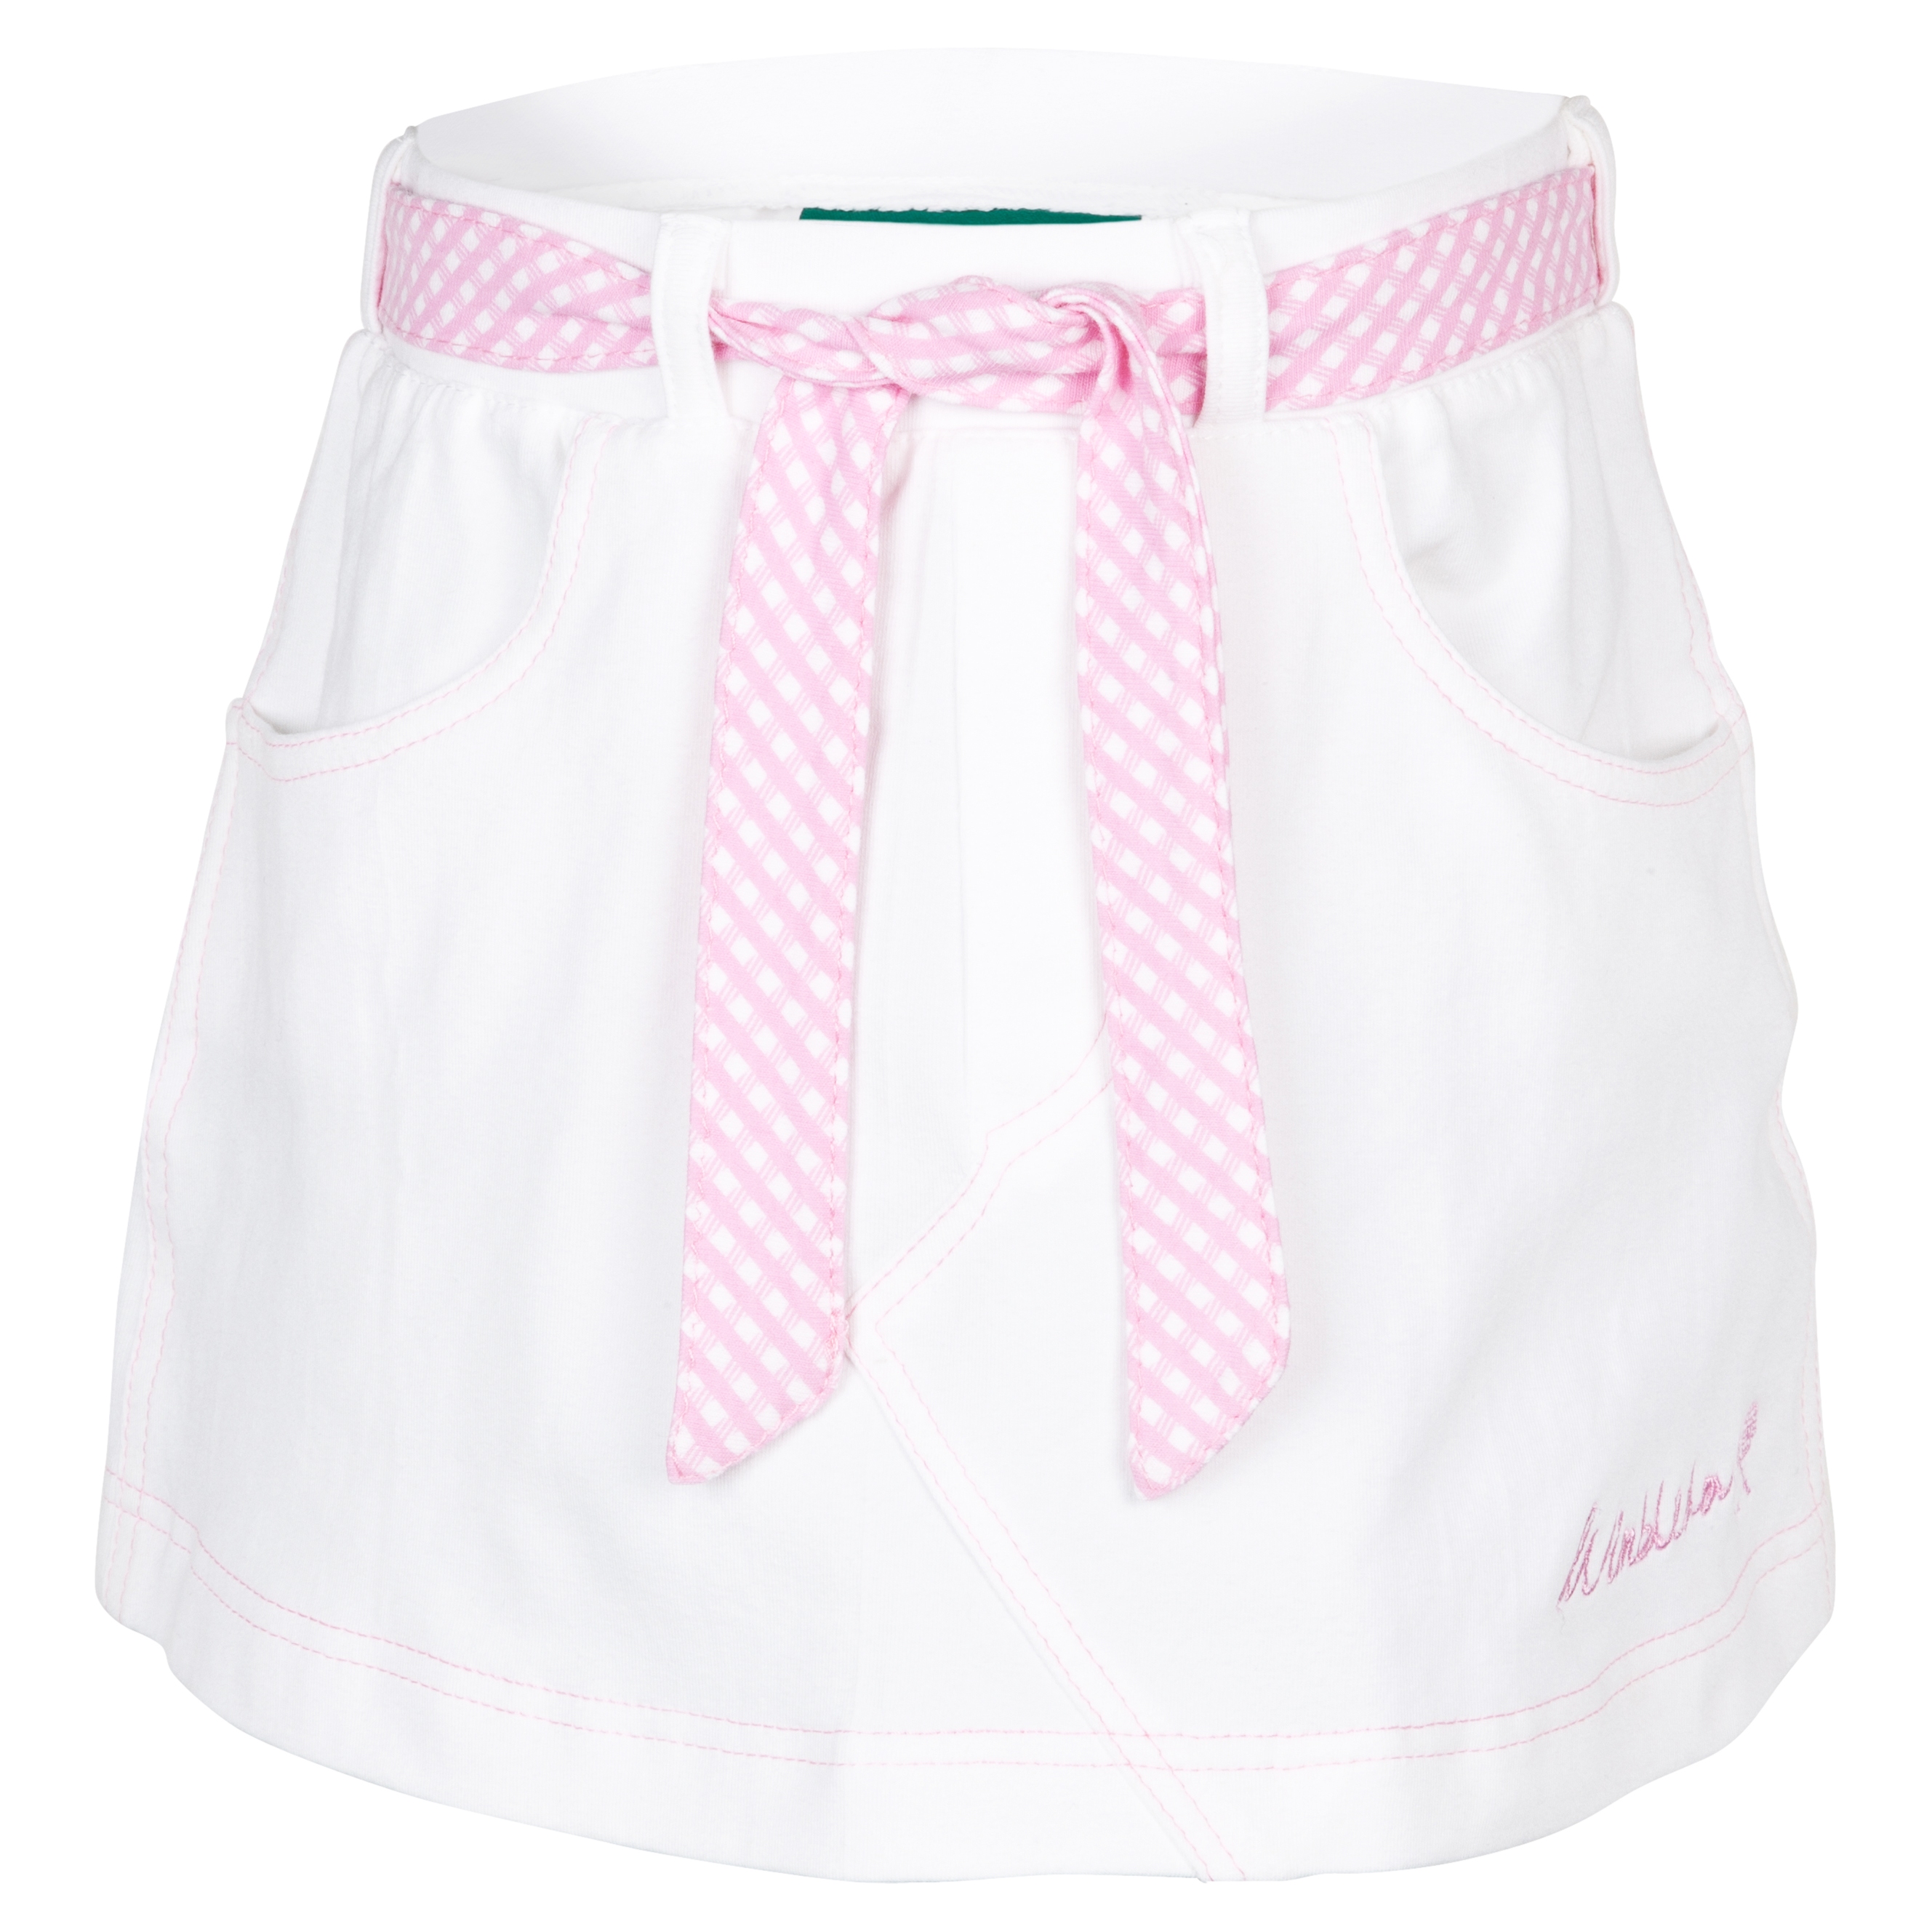 Wimbledon Tennis Skirt - Girls - White